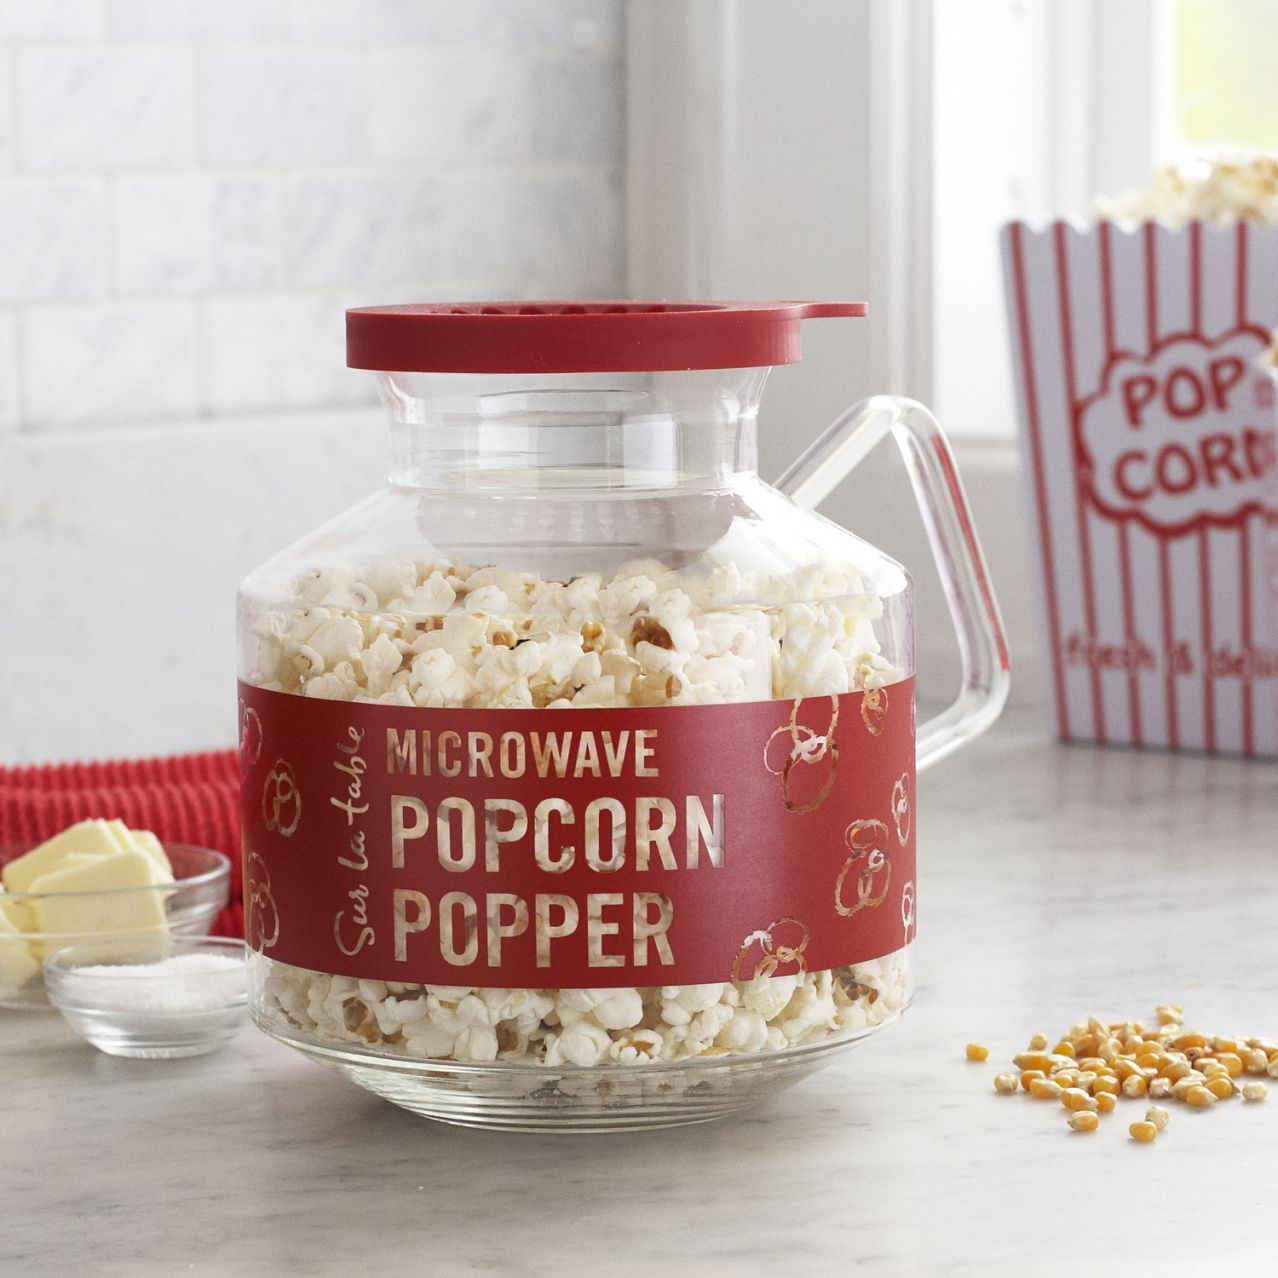 Sur La Table Microwave Popcorn Maker   Make Your Own Healthier (and  Cheaper) Popcorn